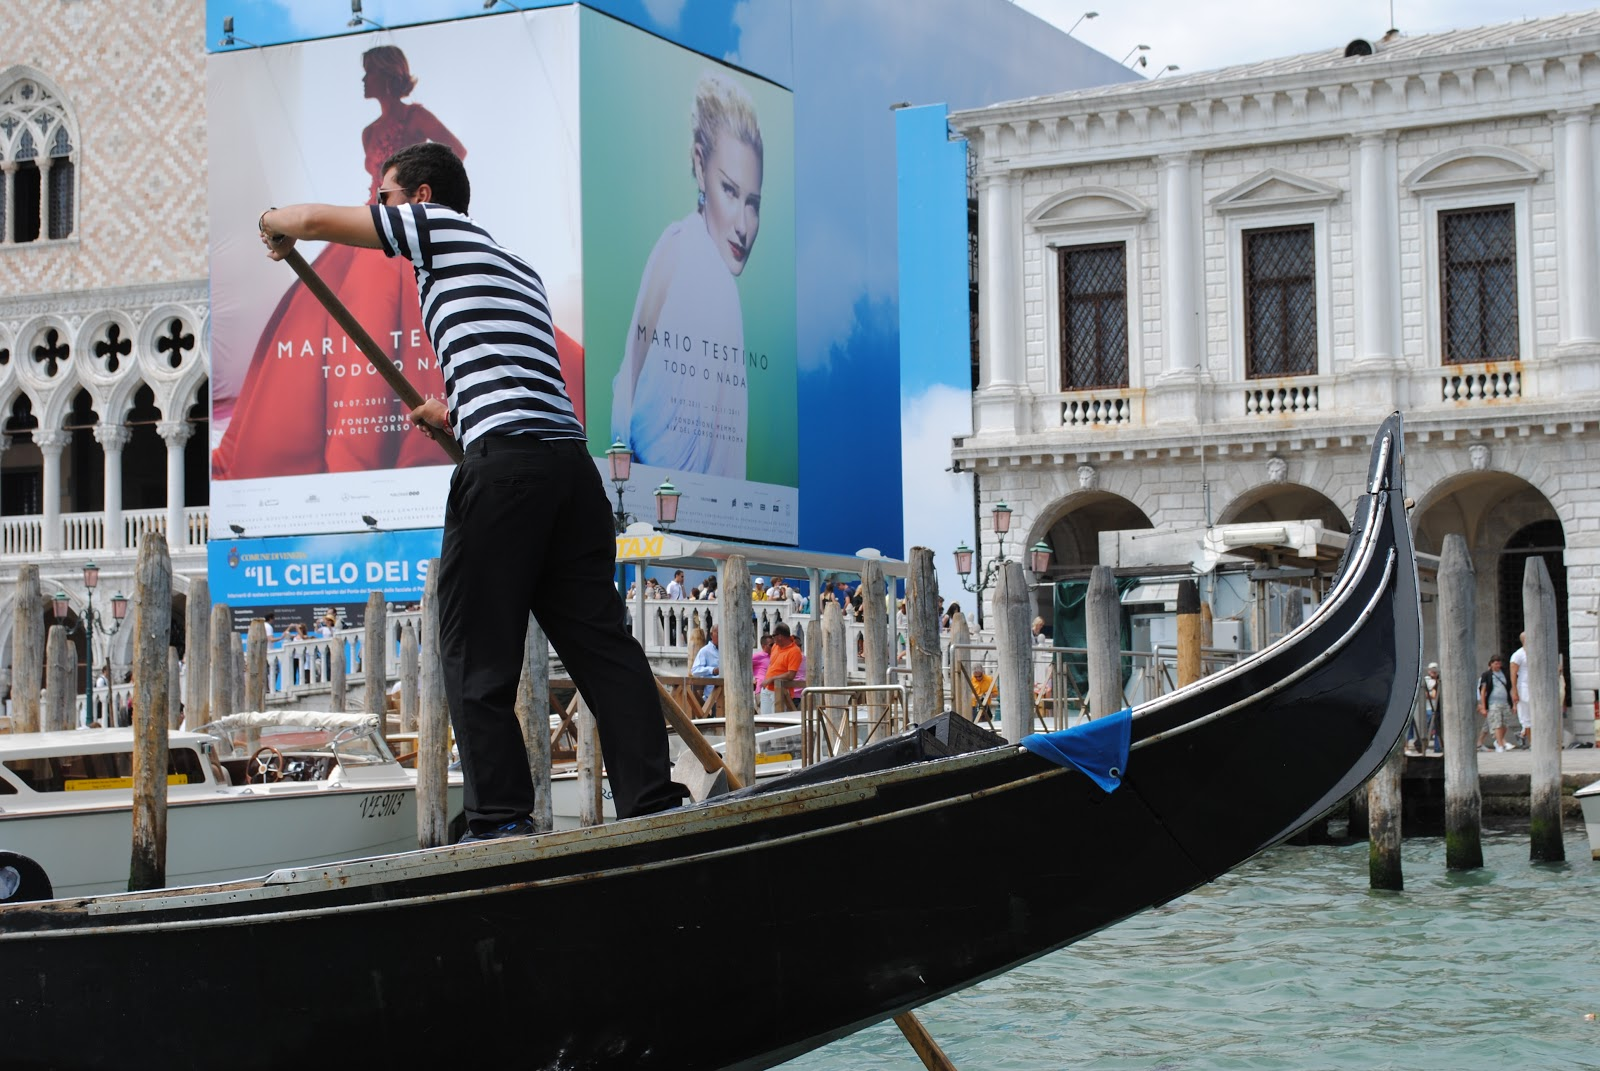 Royal caribbean diamond jubilee party a success cruise international - Carnival Breeze Will Depart On Its Inaugural Cruise From Venice This Sunday June 3 Operating A Special 12 Day Mediterranean Cruise That Ends In Barcelona